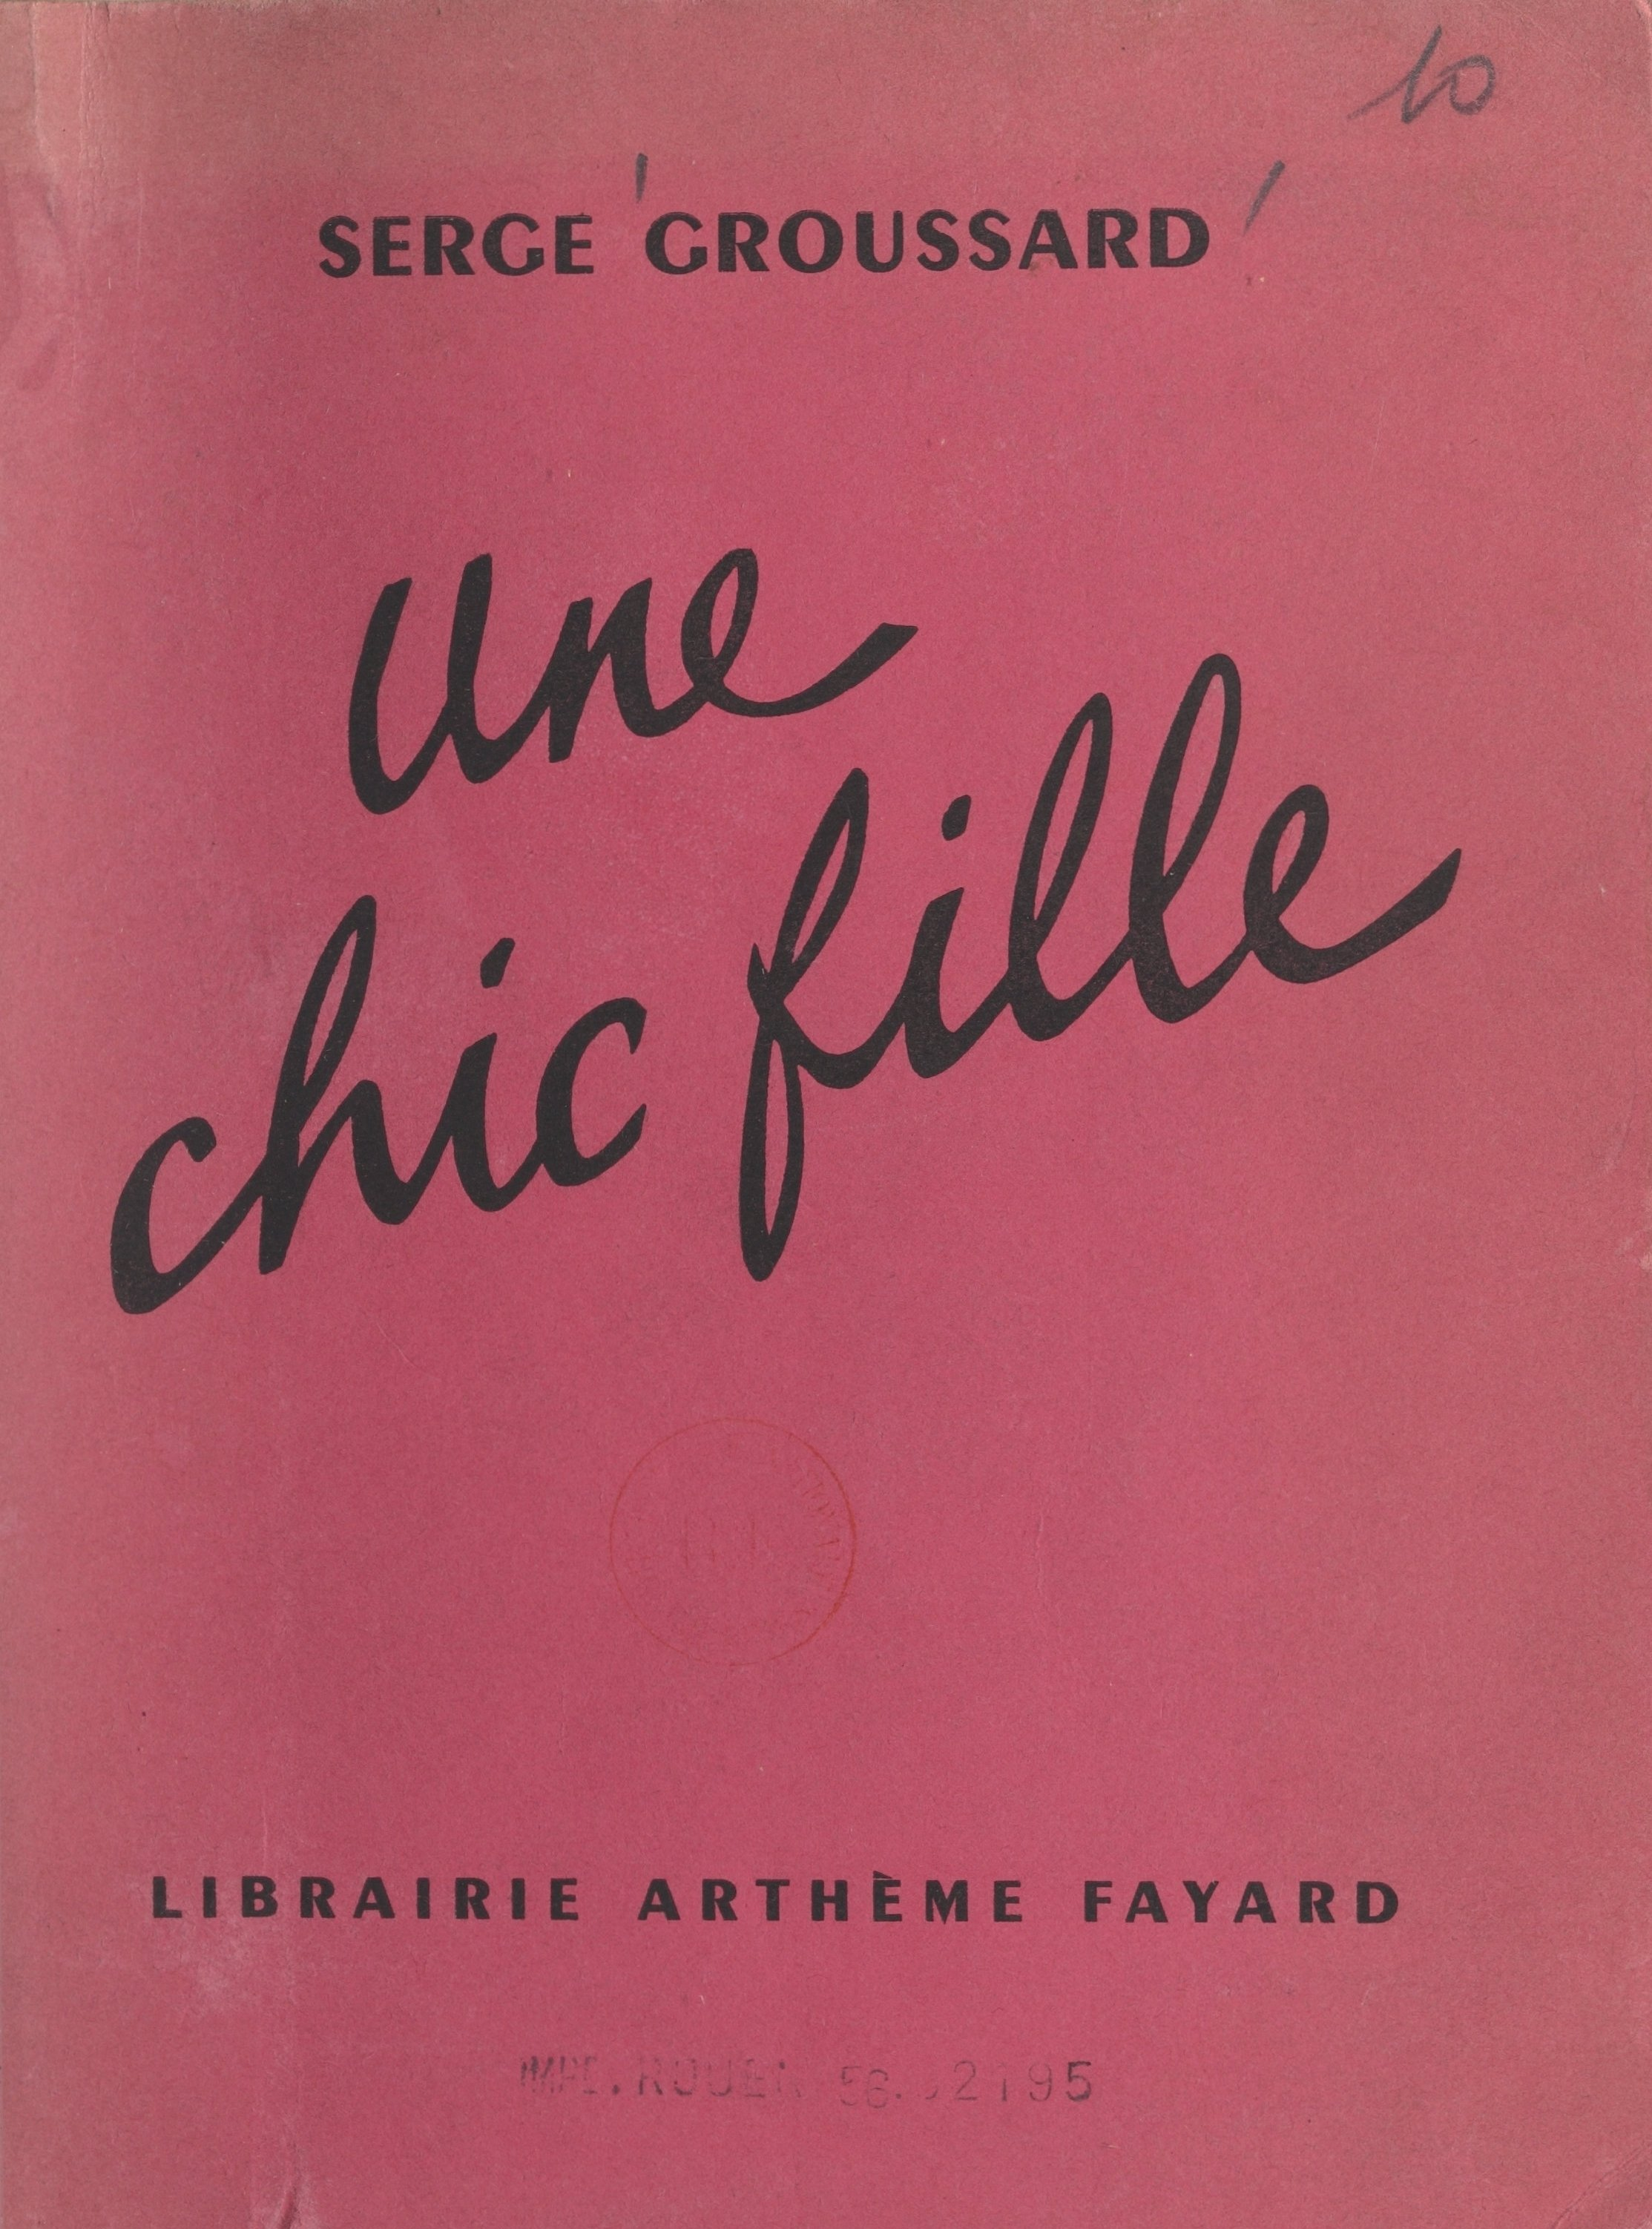 Une chic fille